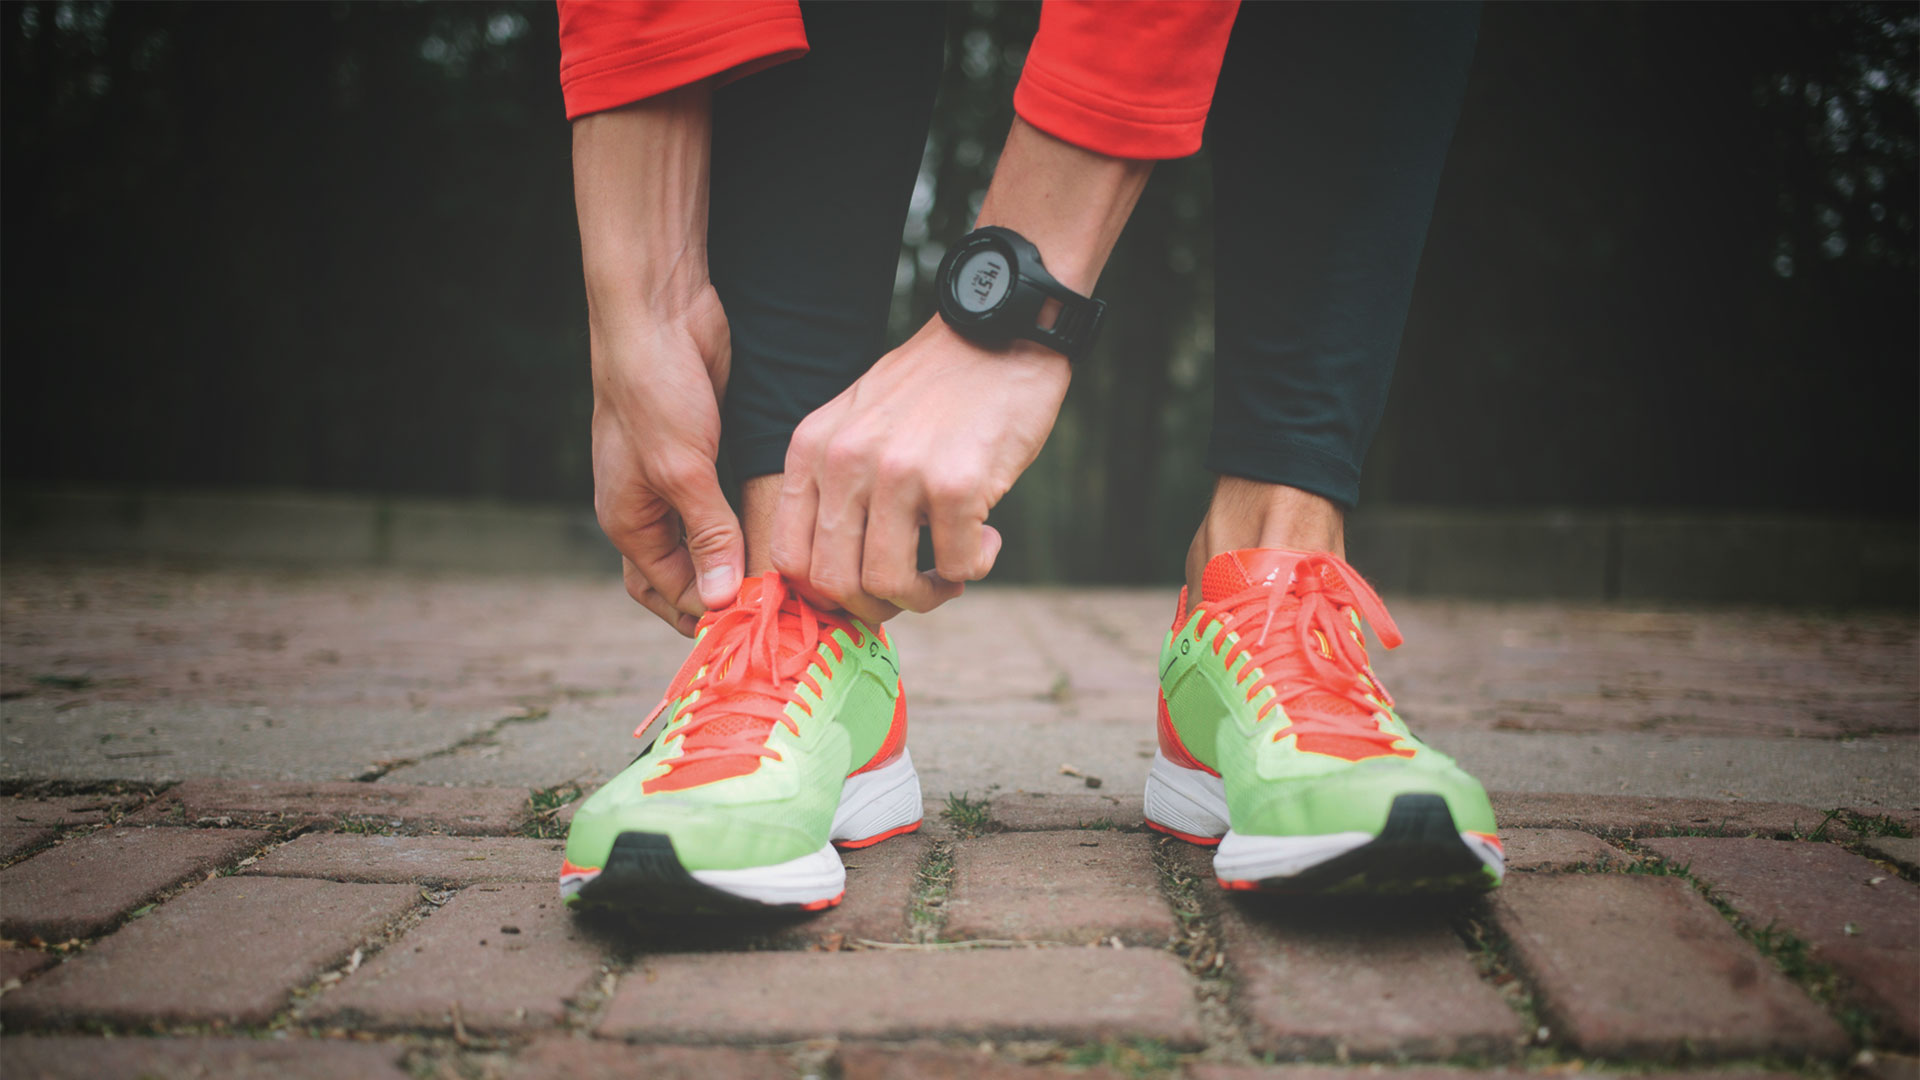 Man Tying Running Shoes | Exercising My Way to Better Parenting